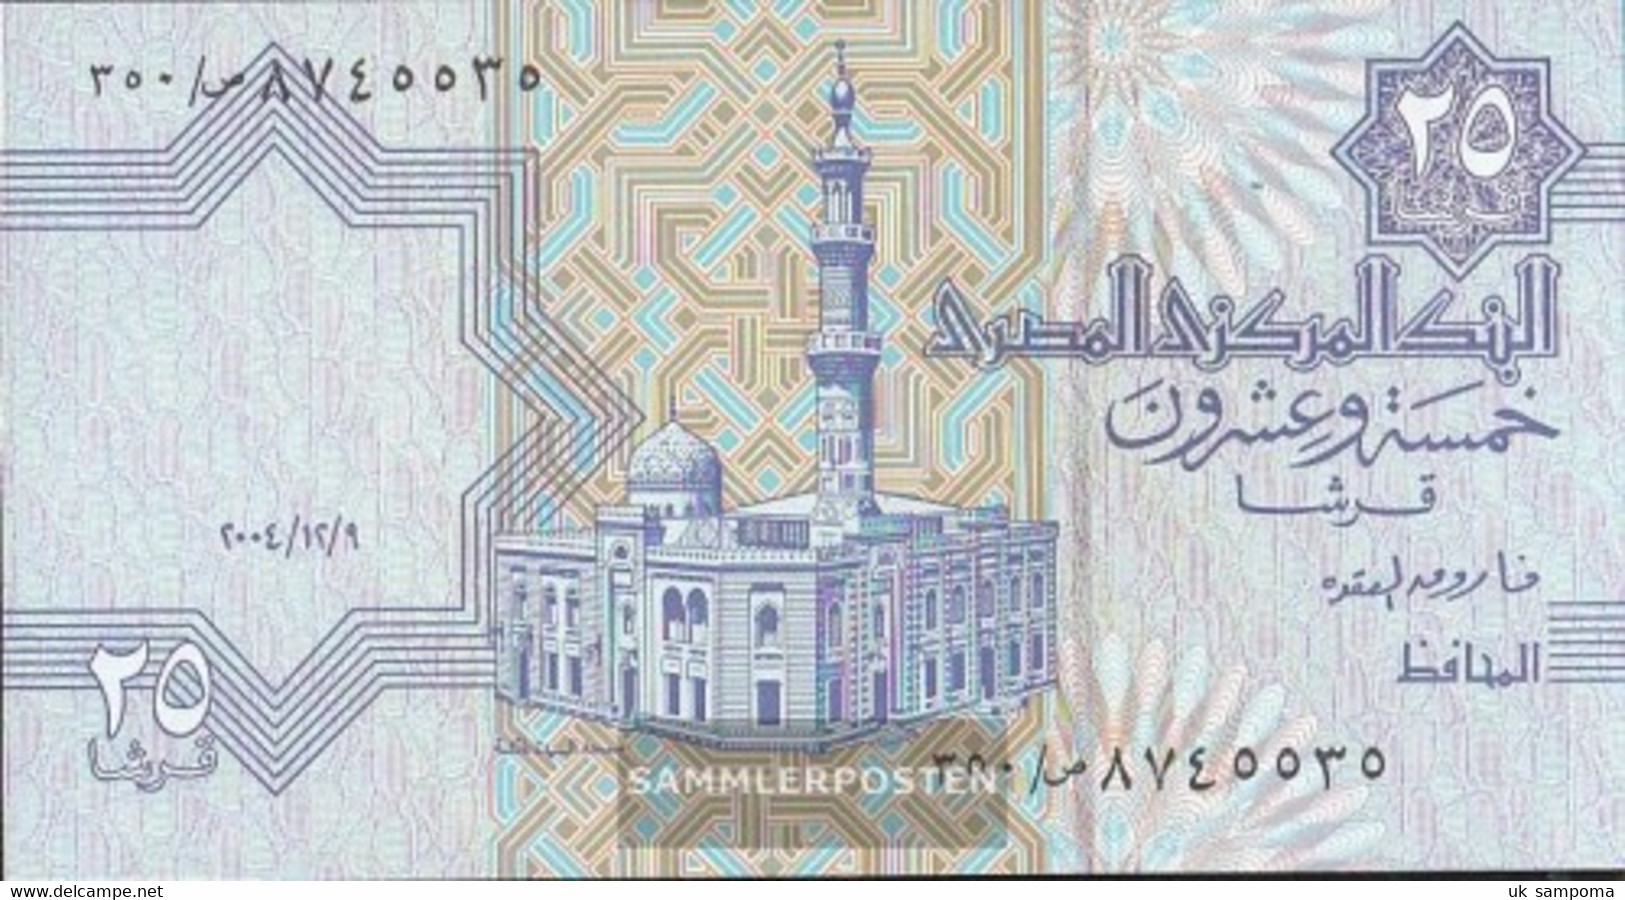 Egypt Pick-number: 57f, Signature 22 (12.9.2004) Uncirculated 2004 25 Piastres - Egypte